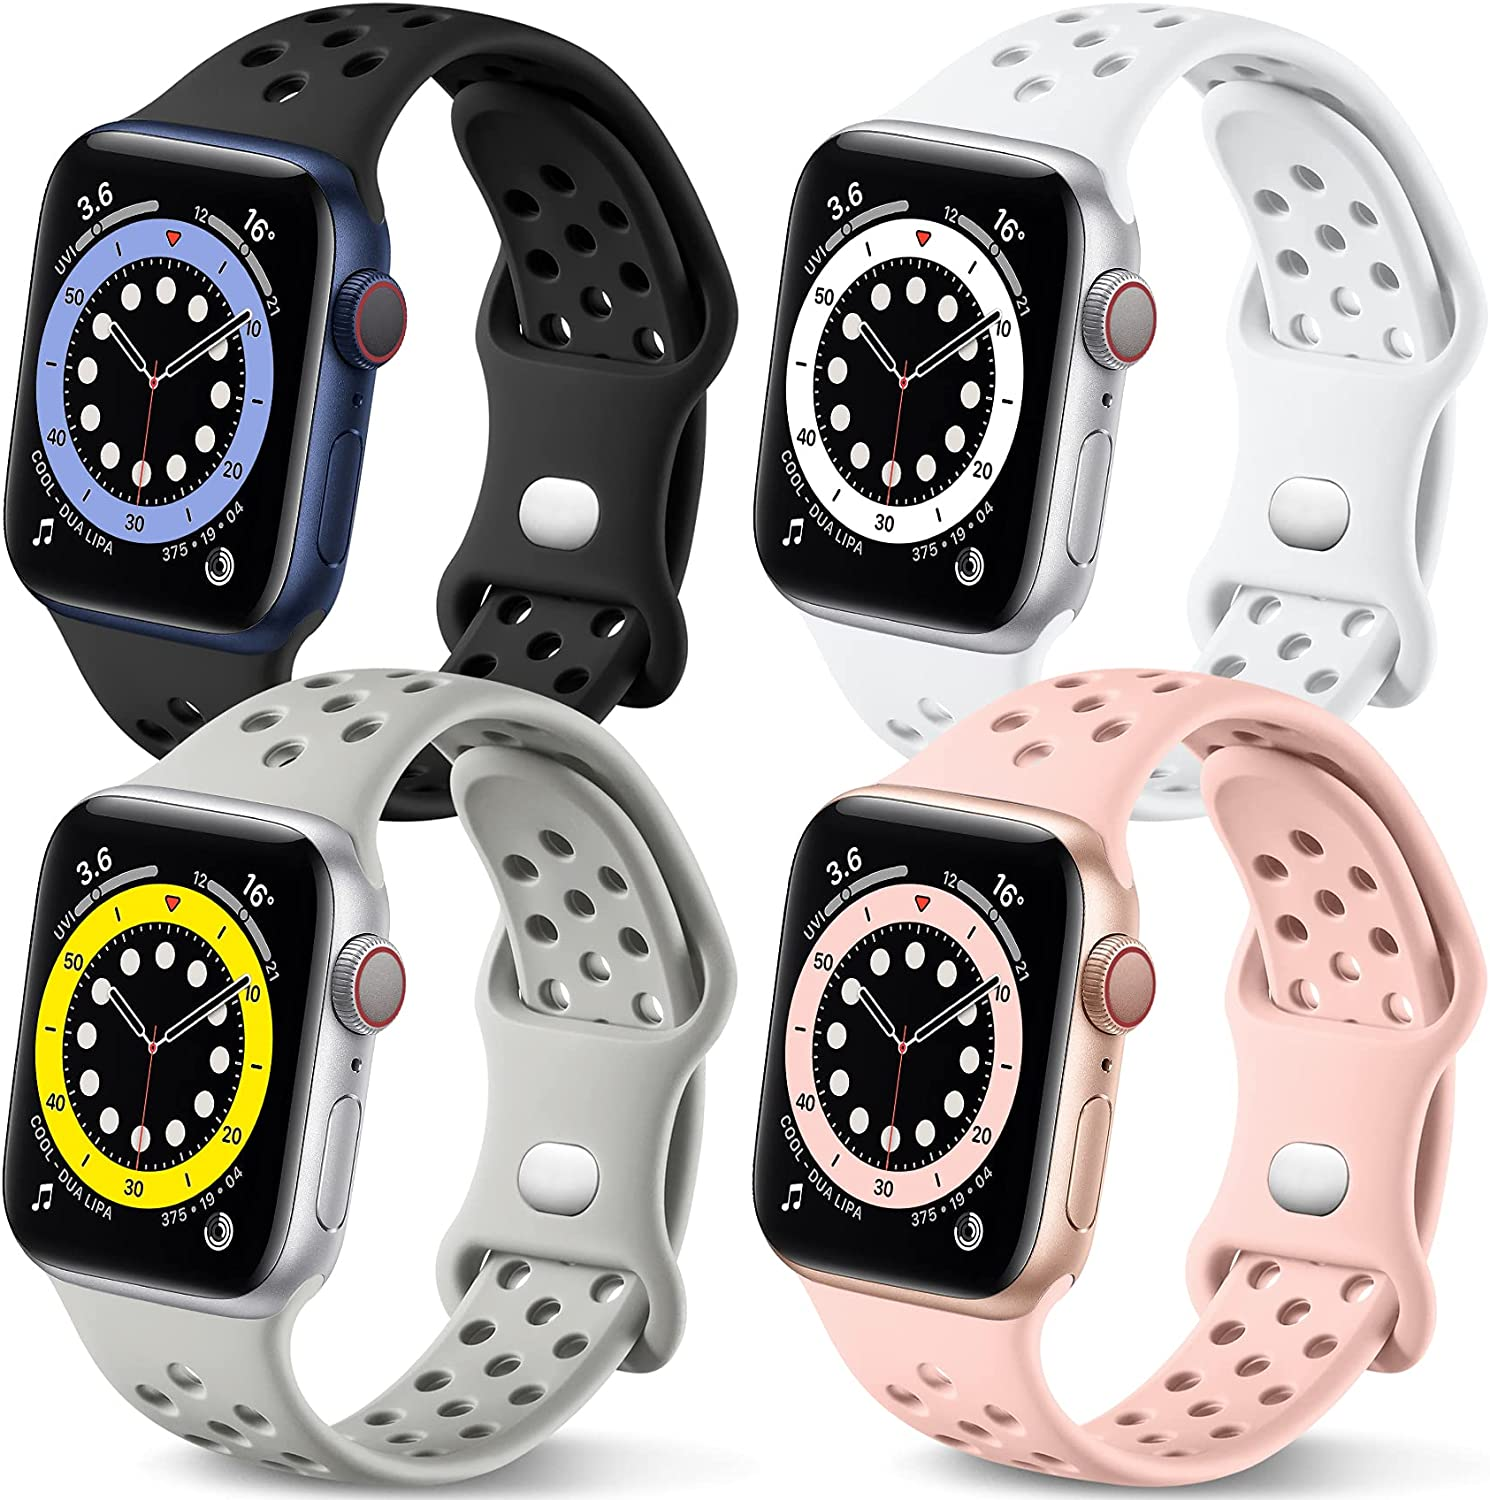 Getino Compatible with Apple Watch Band 40mm 38mm iWatch SE & Series 6 5 4 3 2 1 for Women Men, Stylish Durable Soft Silicone Breathable Sport Replacement Bands, 4 Pack, Black/Pink/White/Gray